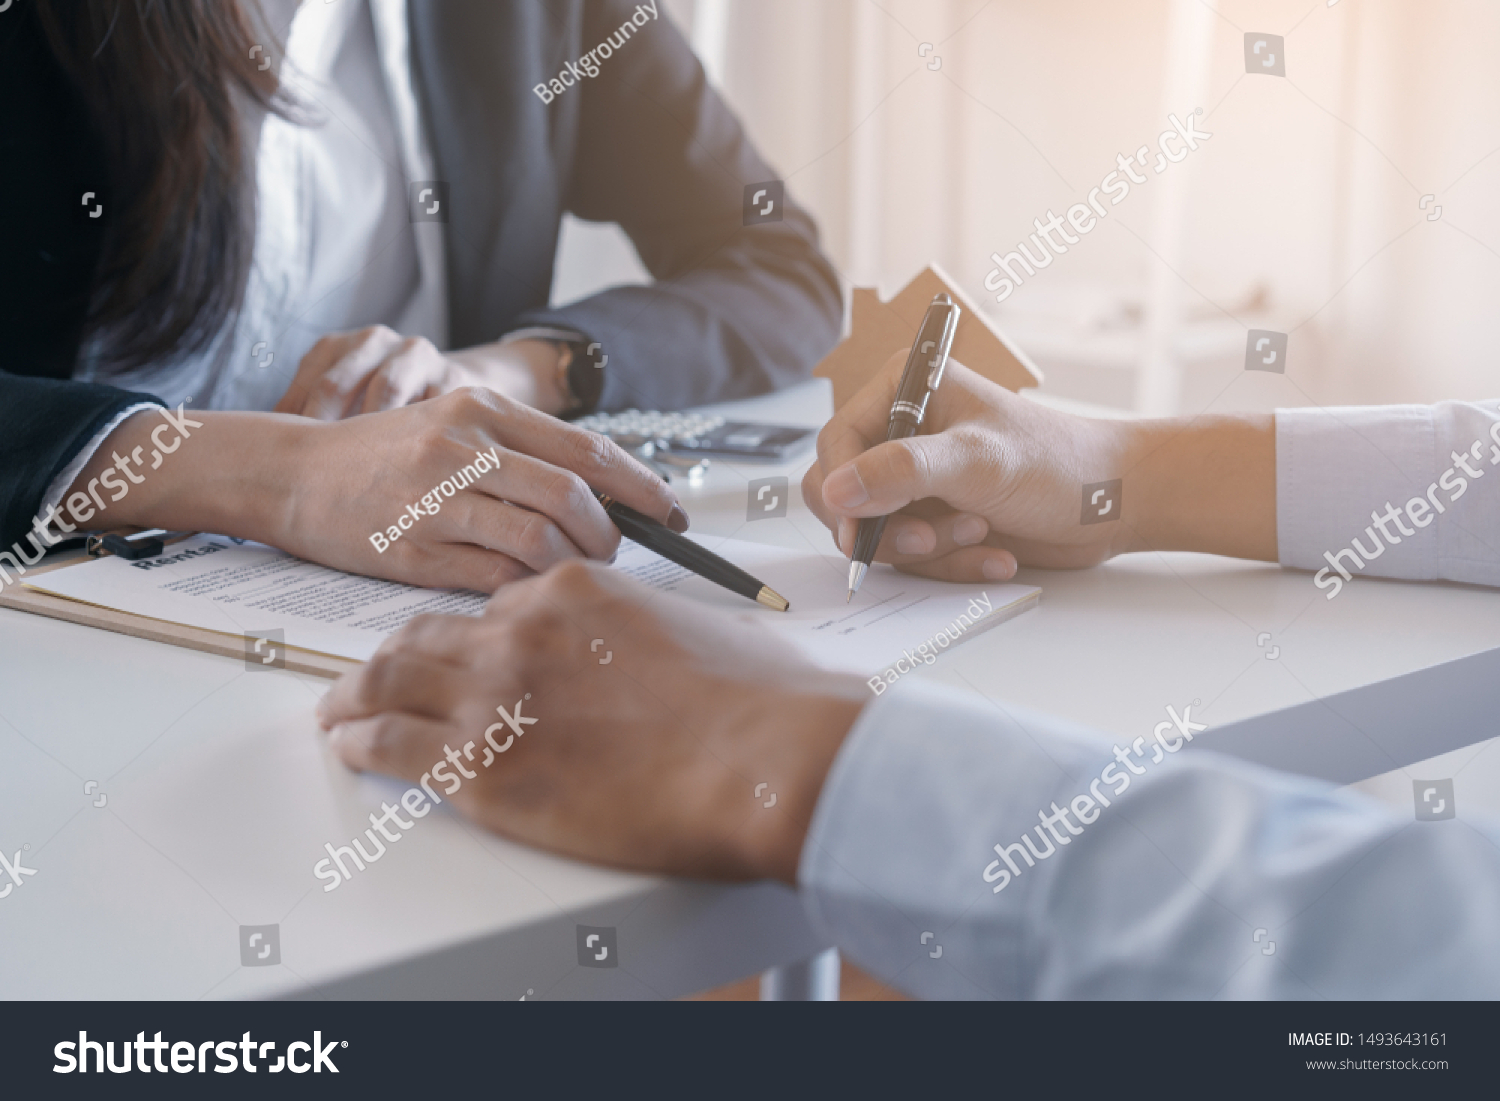 Salesmen are letting the male customers sign the sales contract, Asian women and men are doing business in the office, Business concept and contract signing